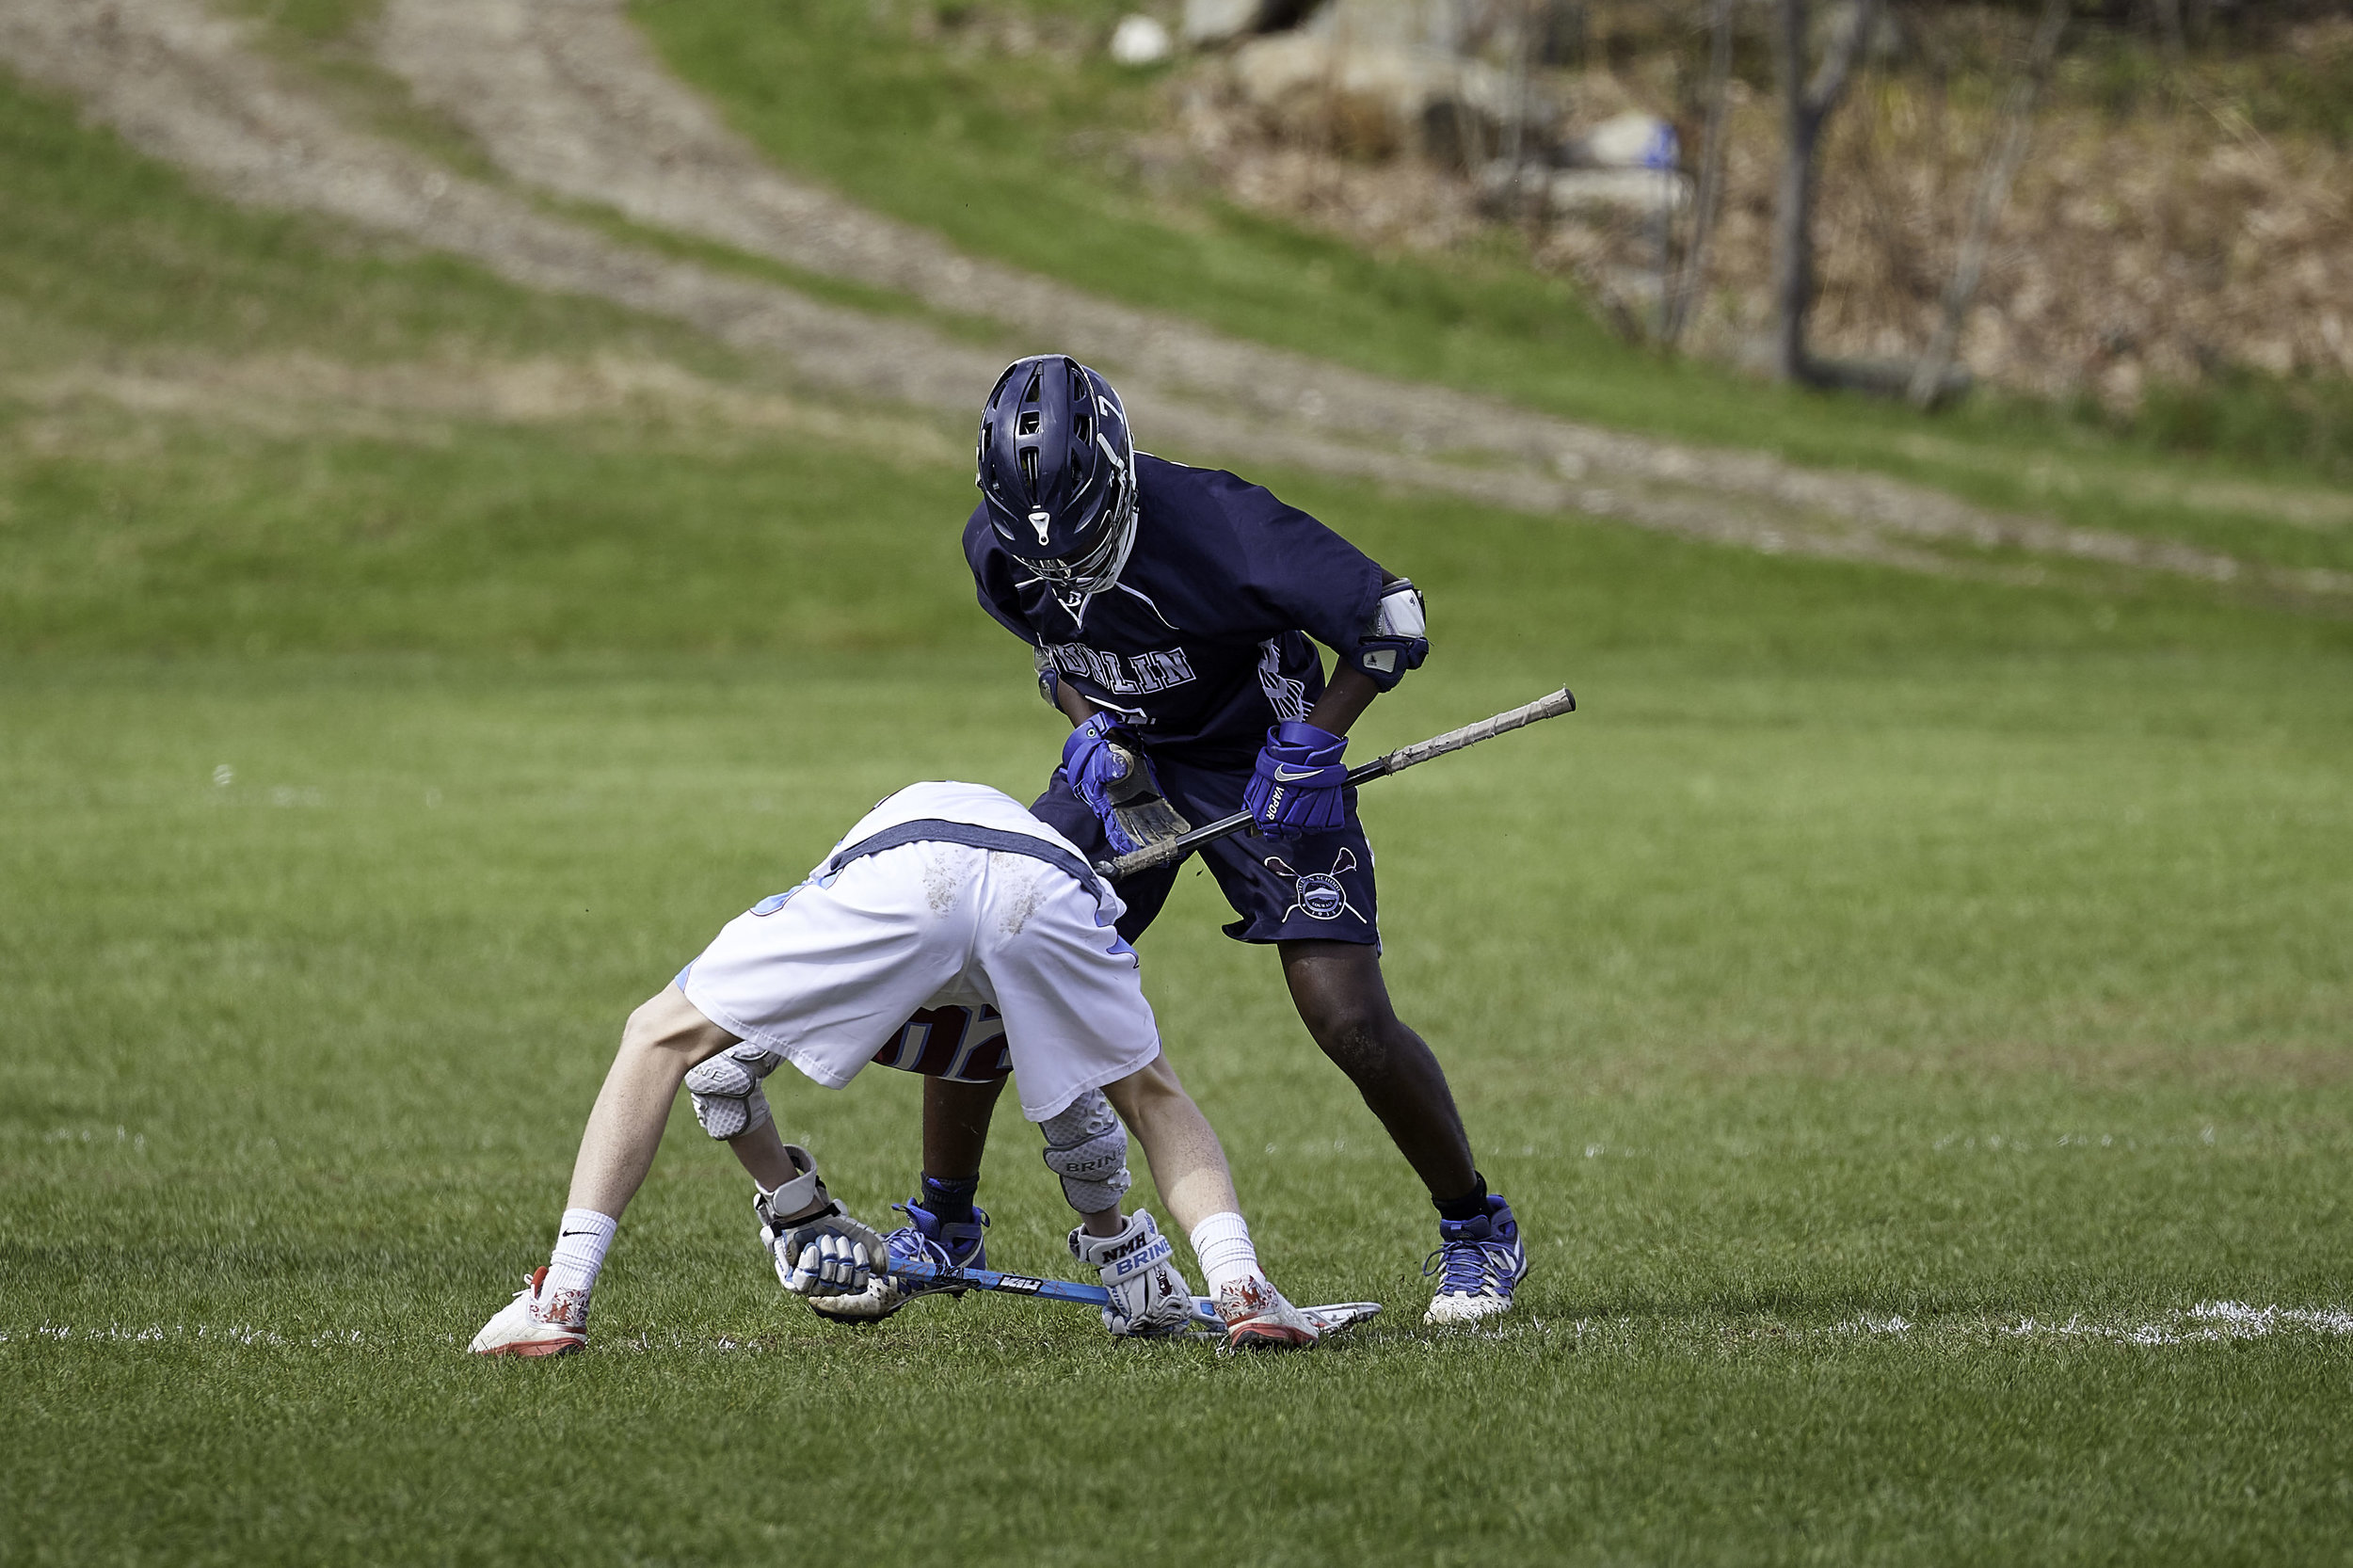 Boys Lax vs Northfield Mount Hermon JV - May 15 2019 - 0025.jpg